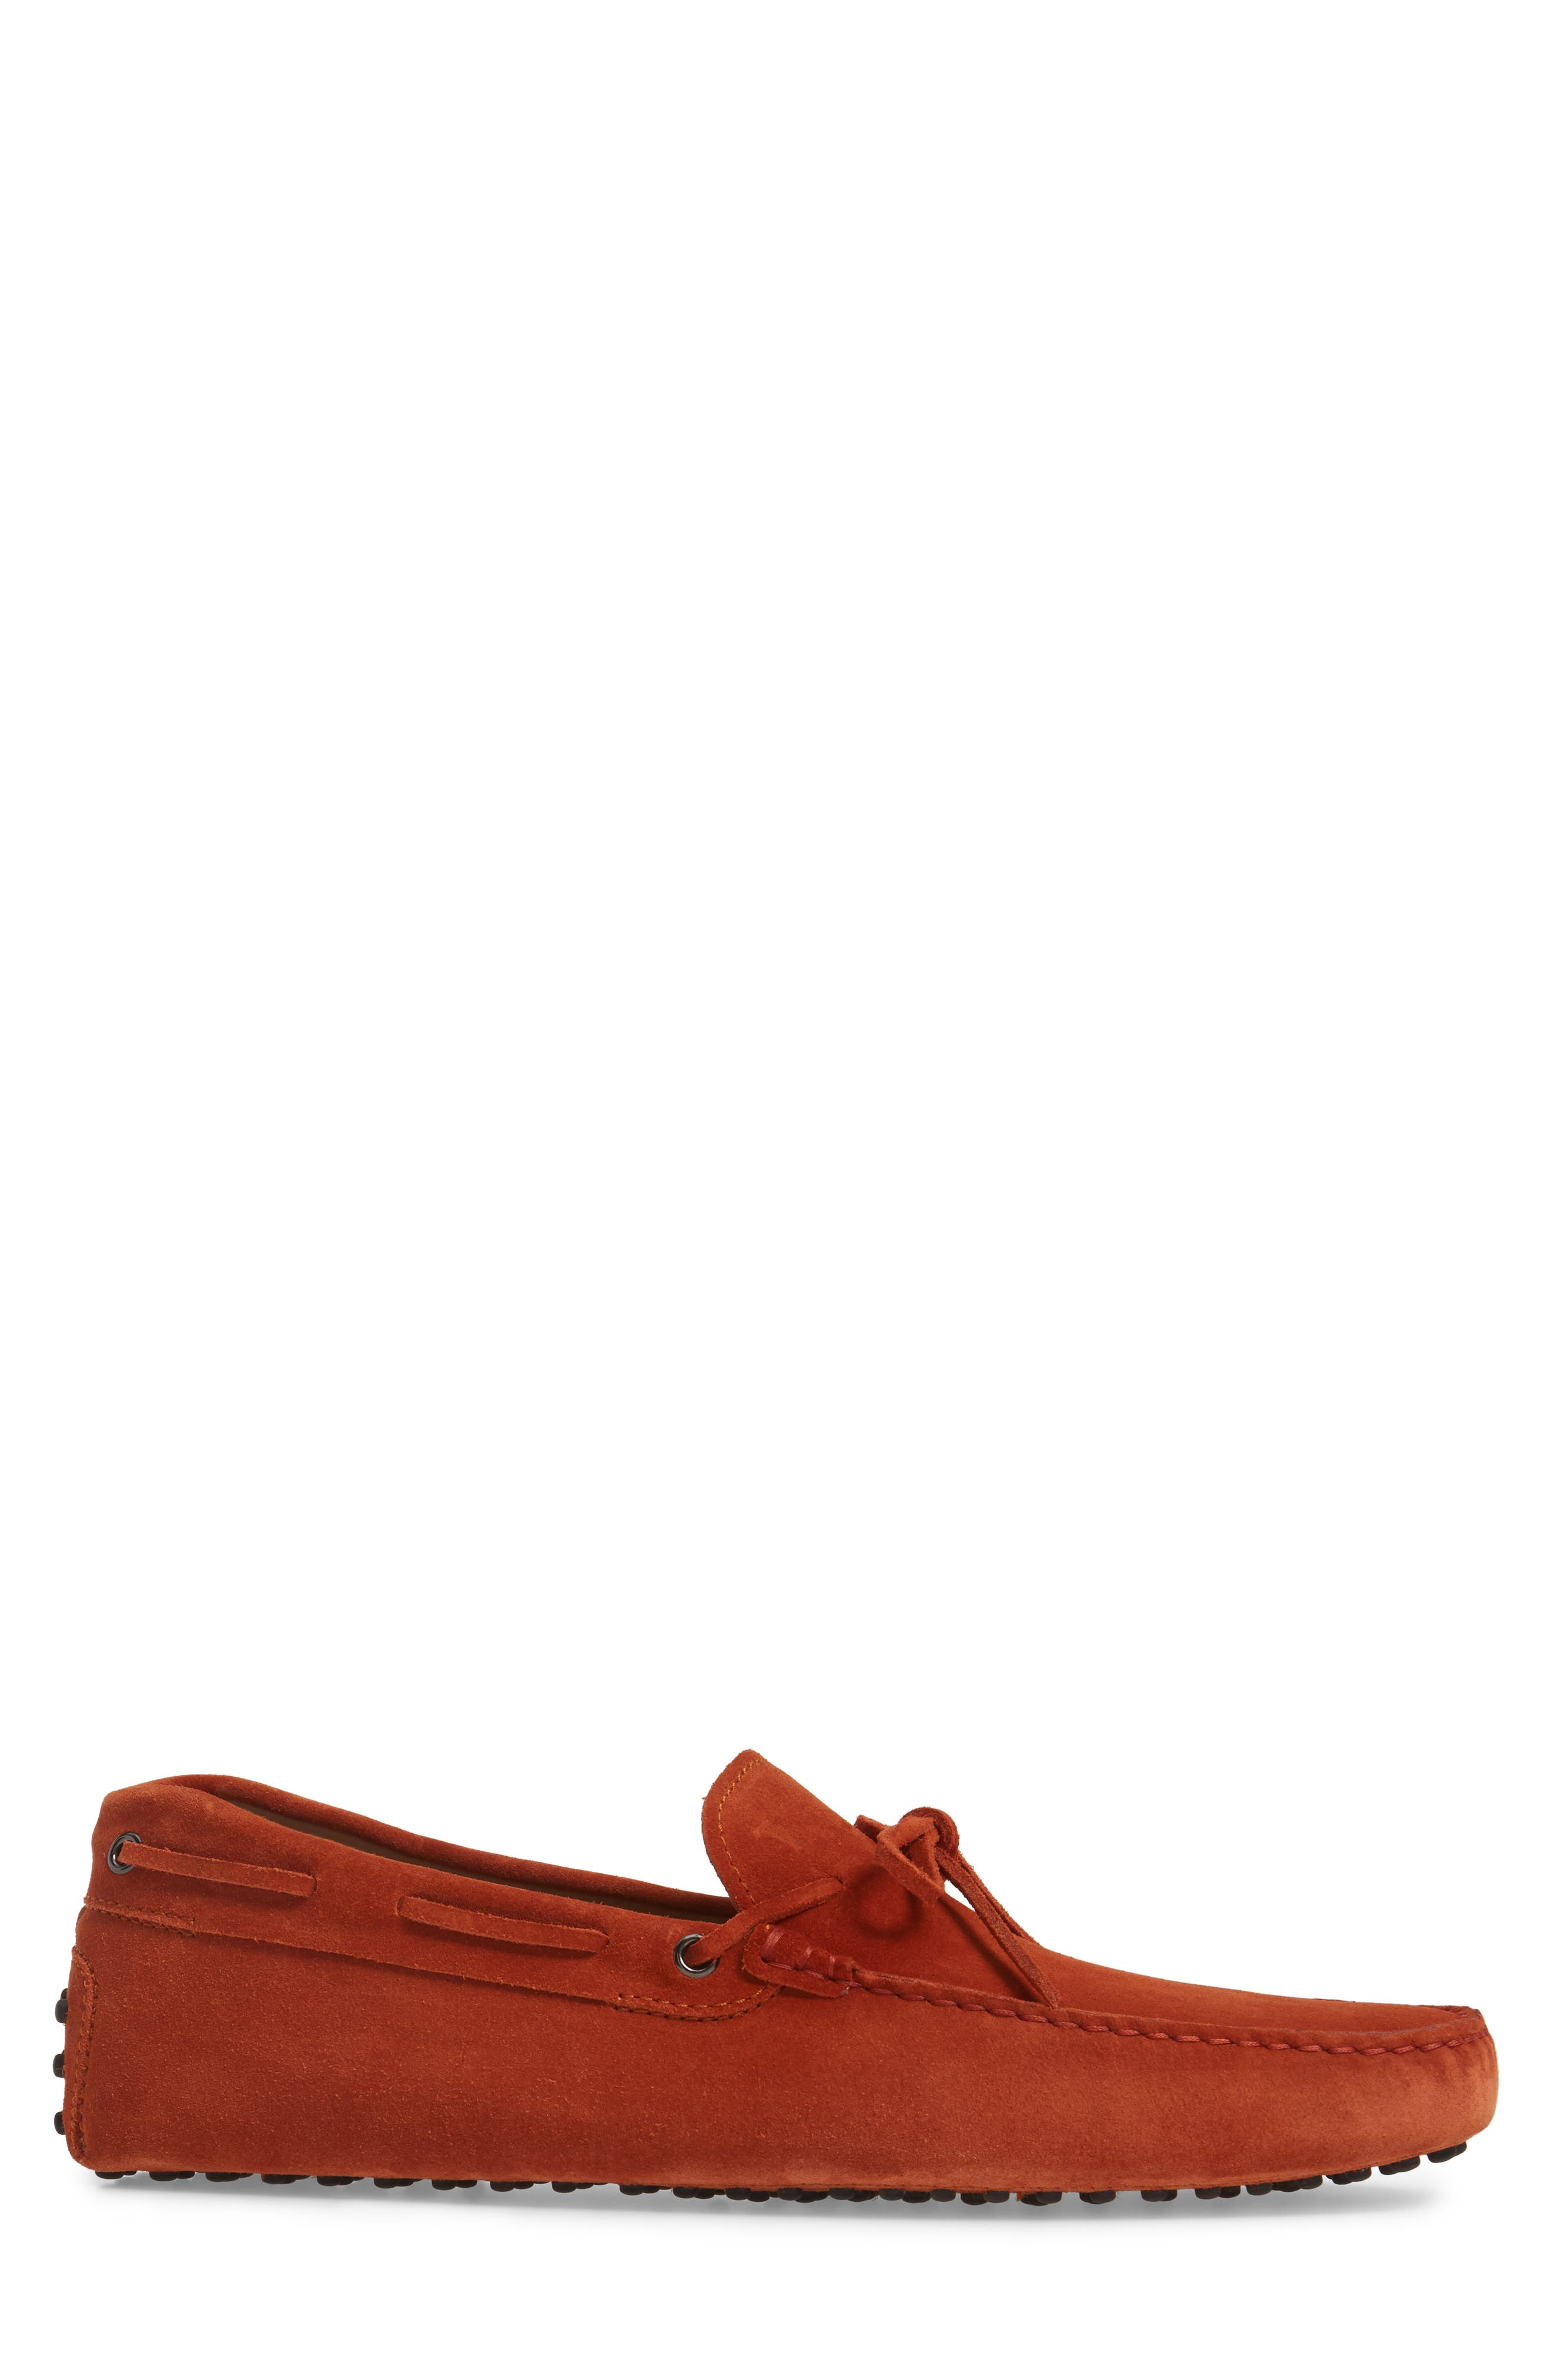 Alternate Image 3  - Tod's Gommini Tie Front Driving Moccasin (Men)